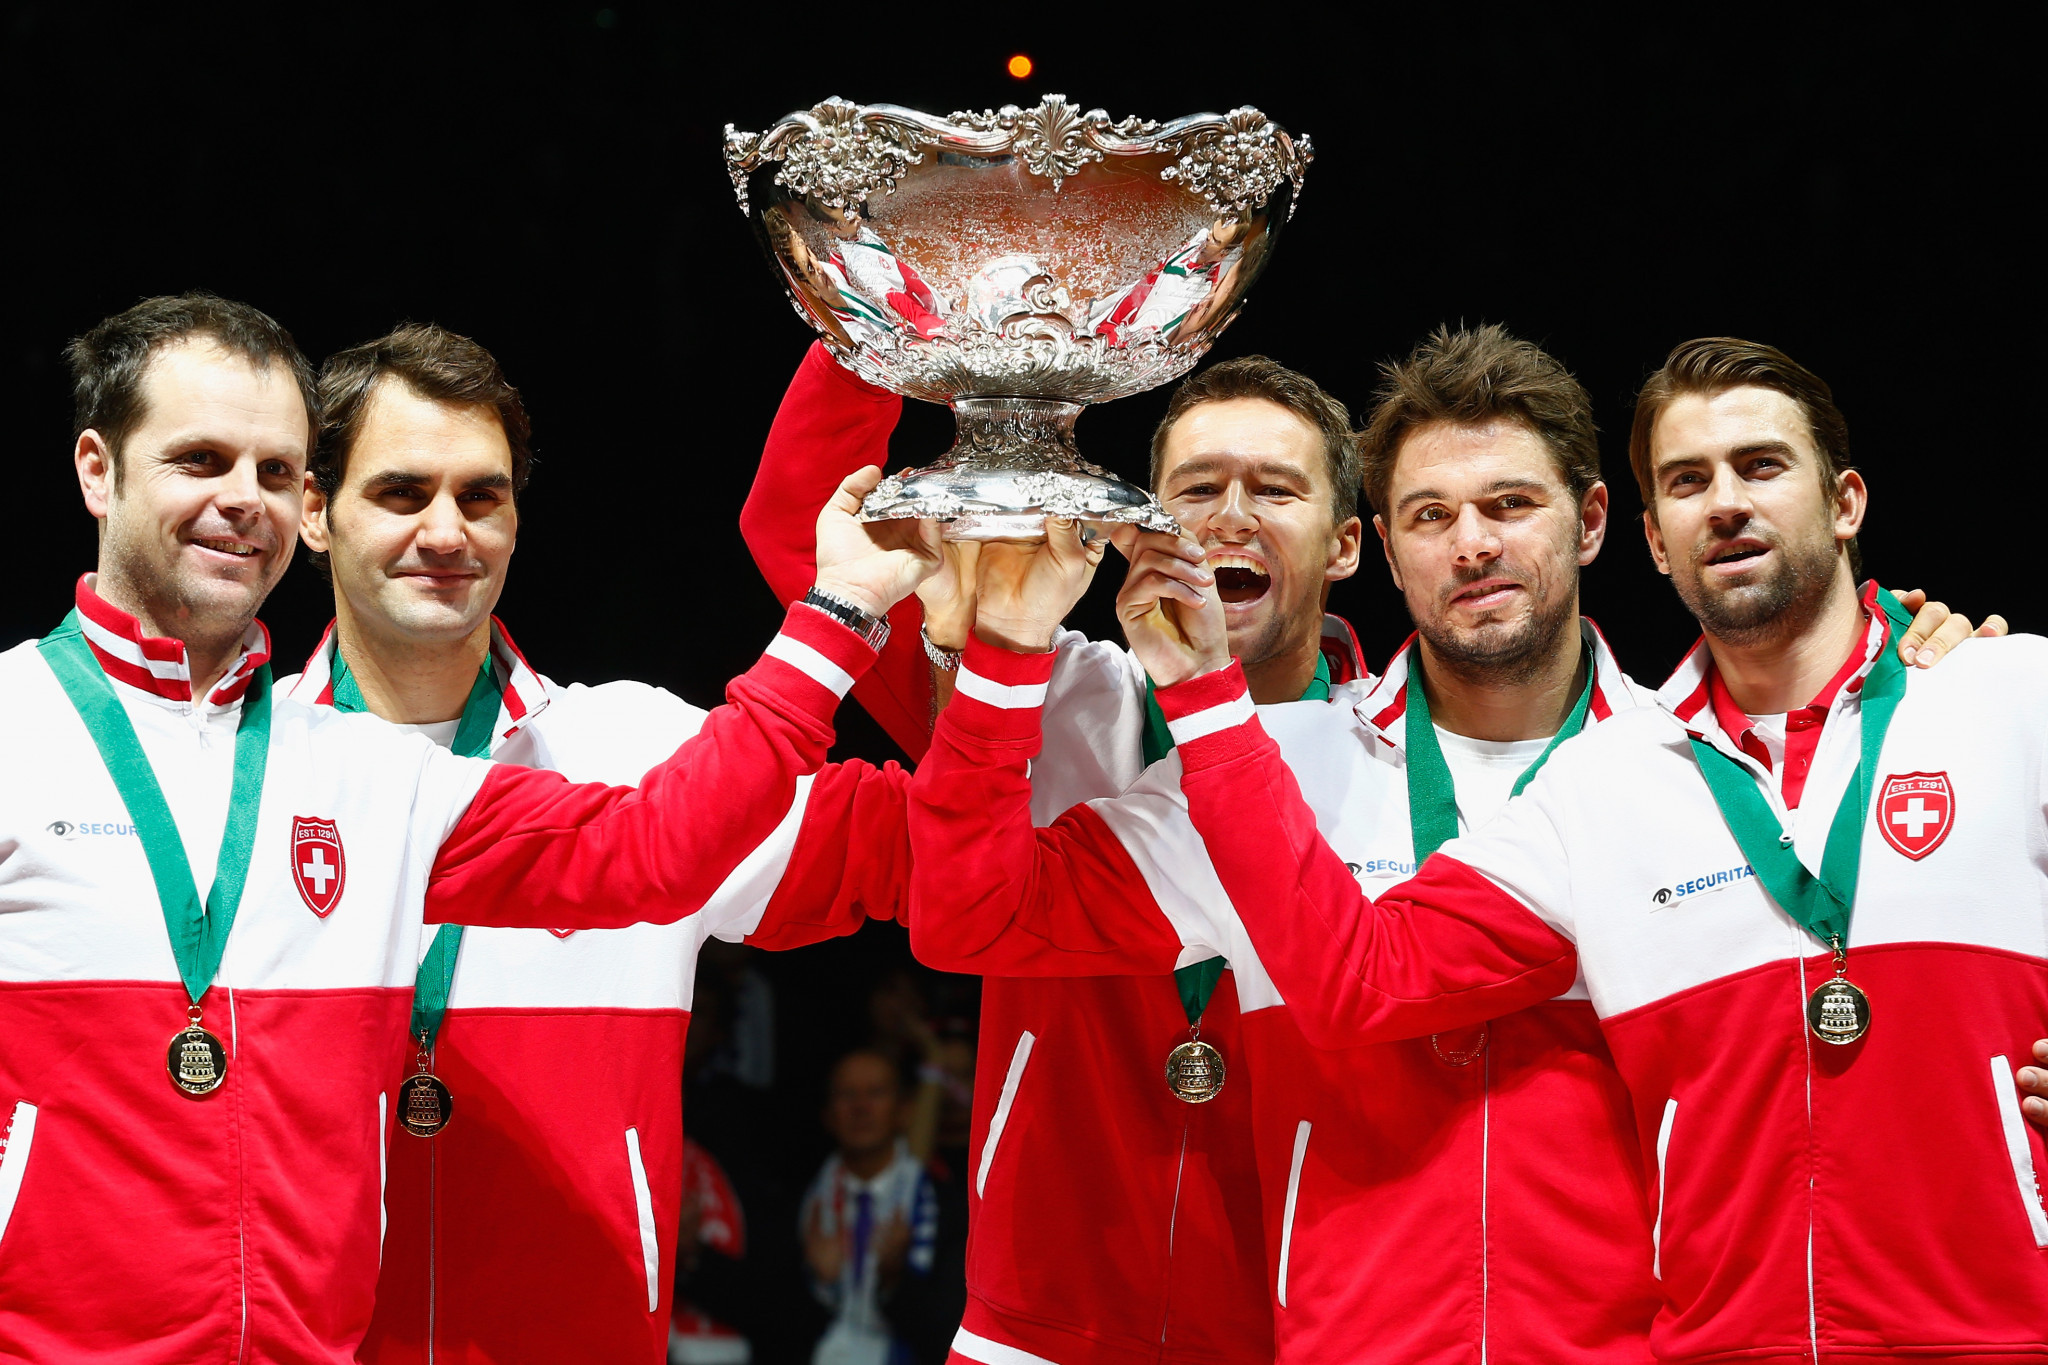 ITF open Fed and Davis Cup video archives in absence of live matches